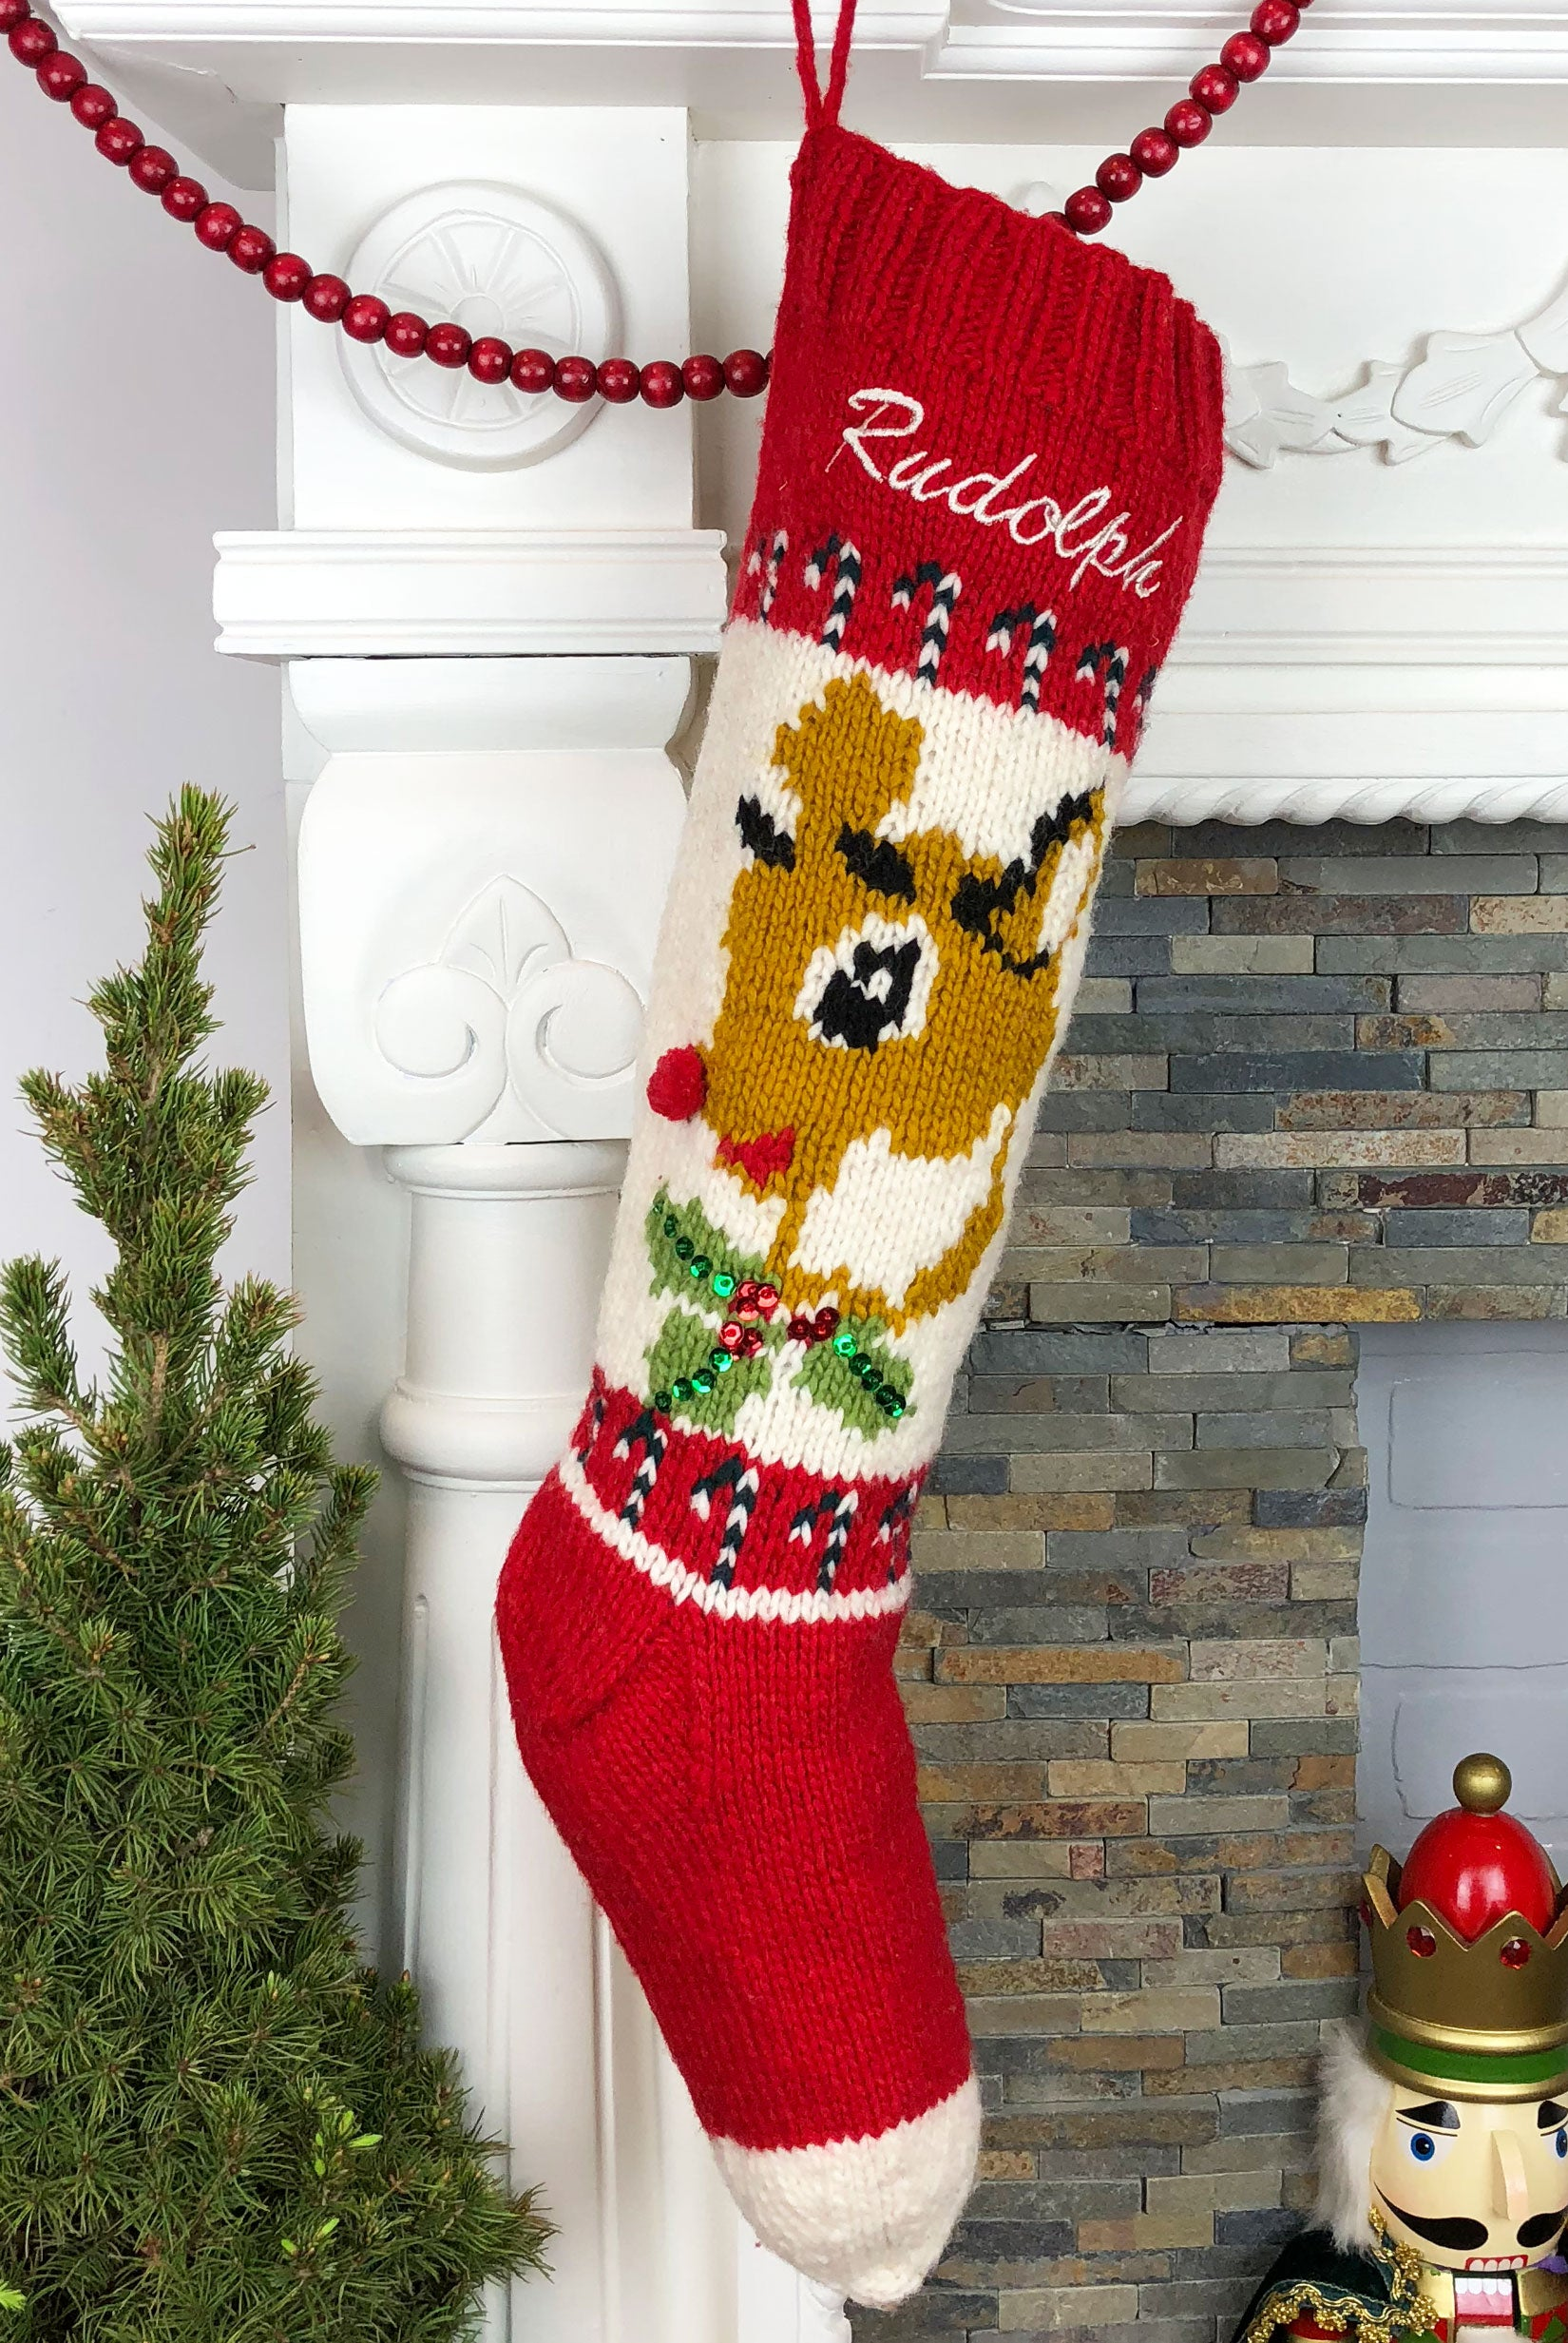 Personalized Reindeer Christmas Stocking – Hand Knit Holiday